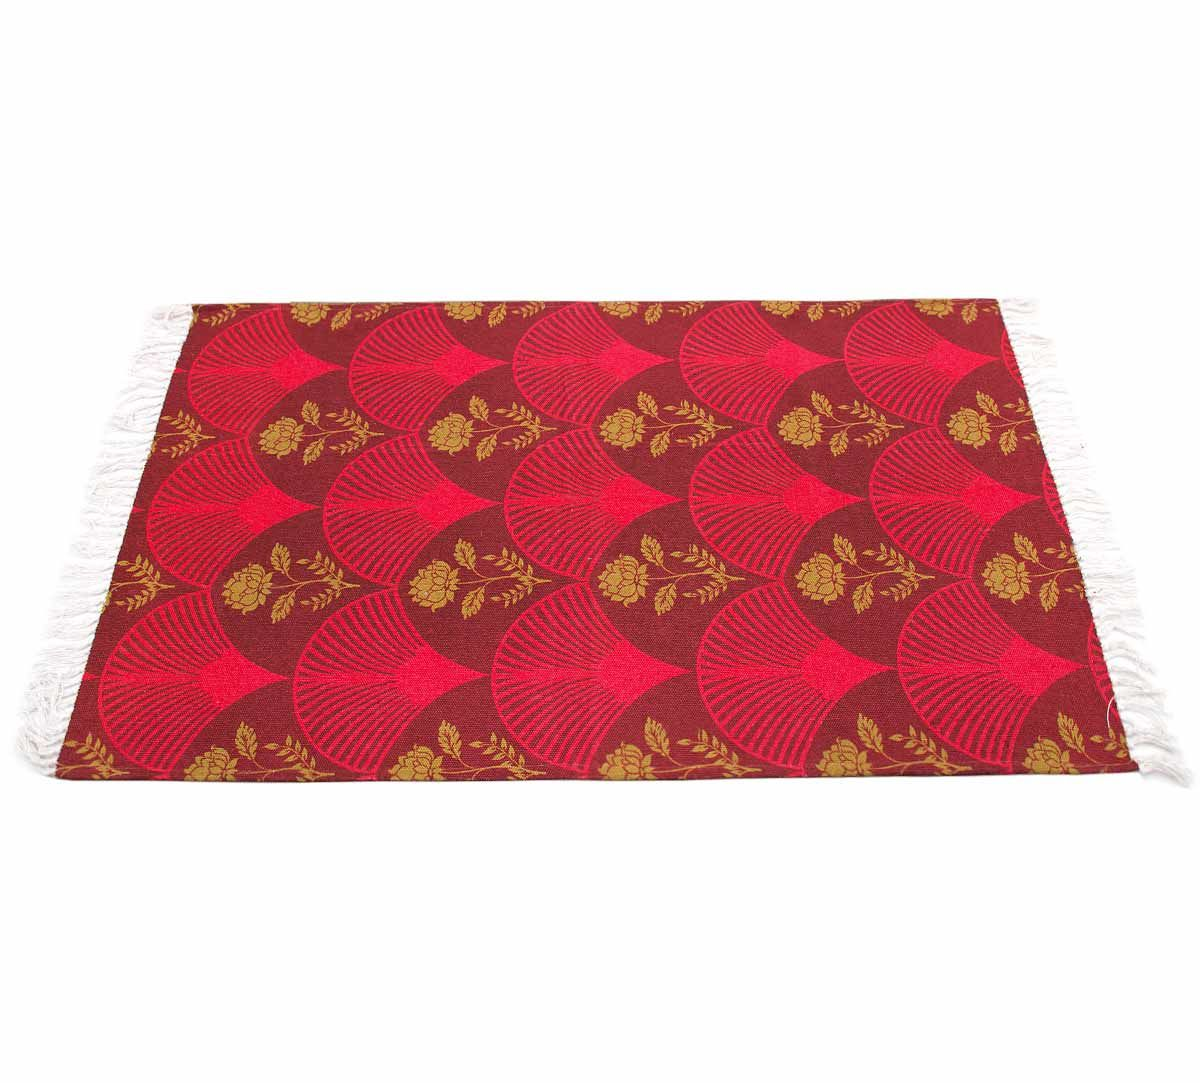 India Circus Fans of Blossom Rug